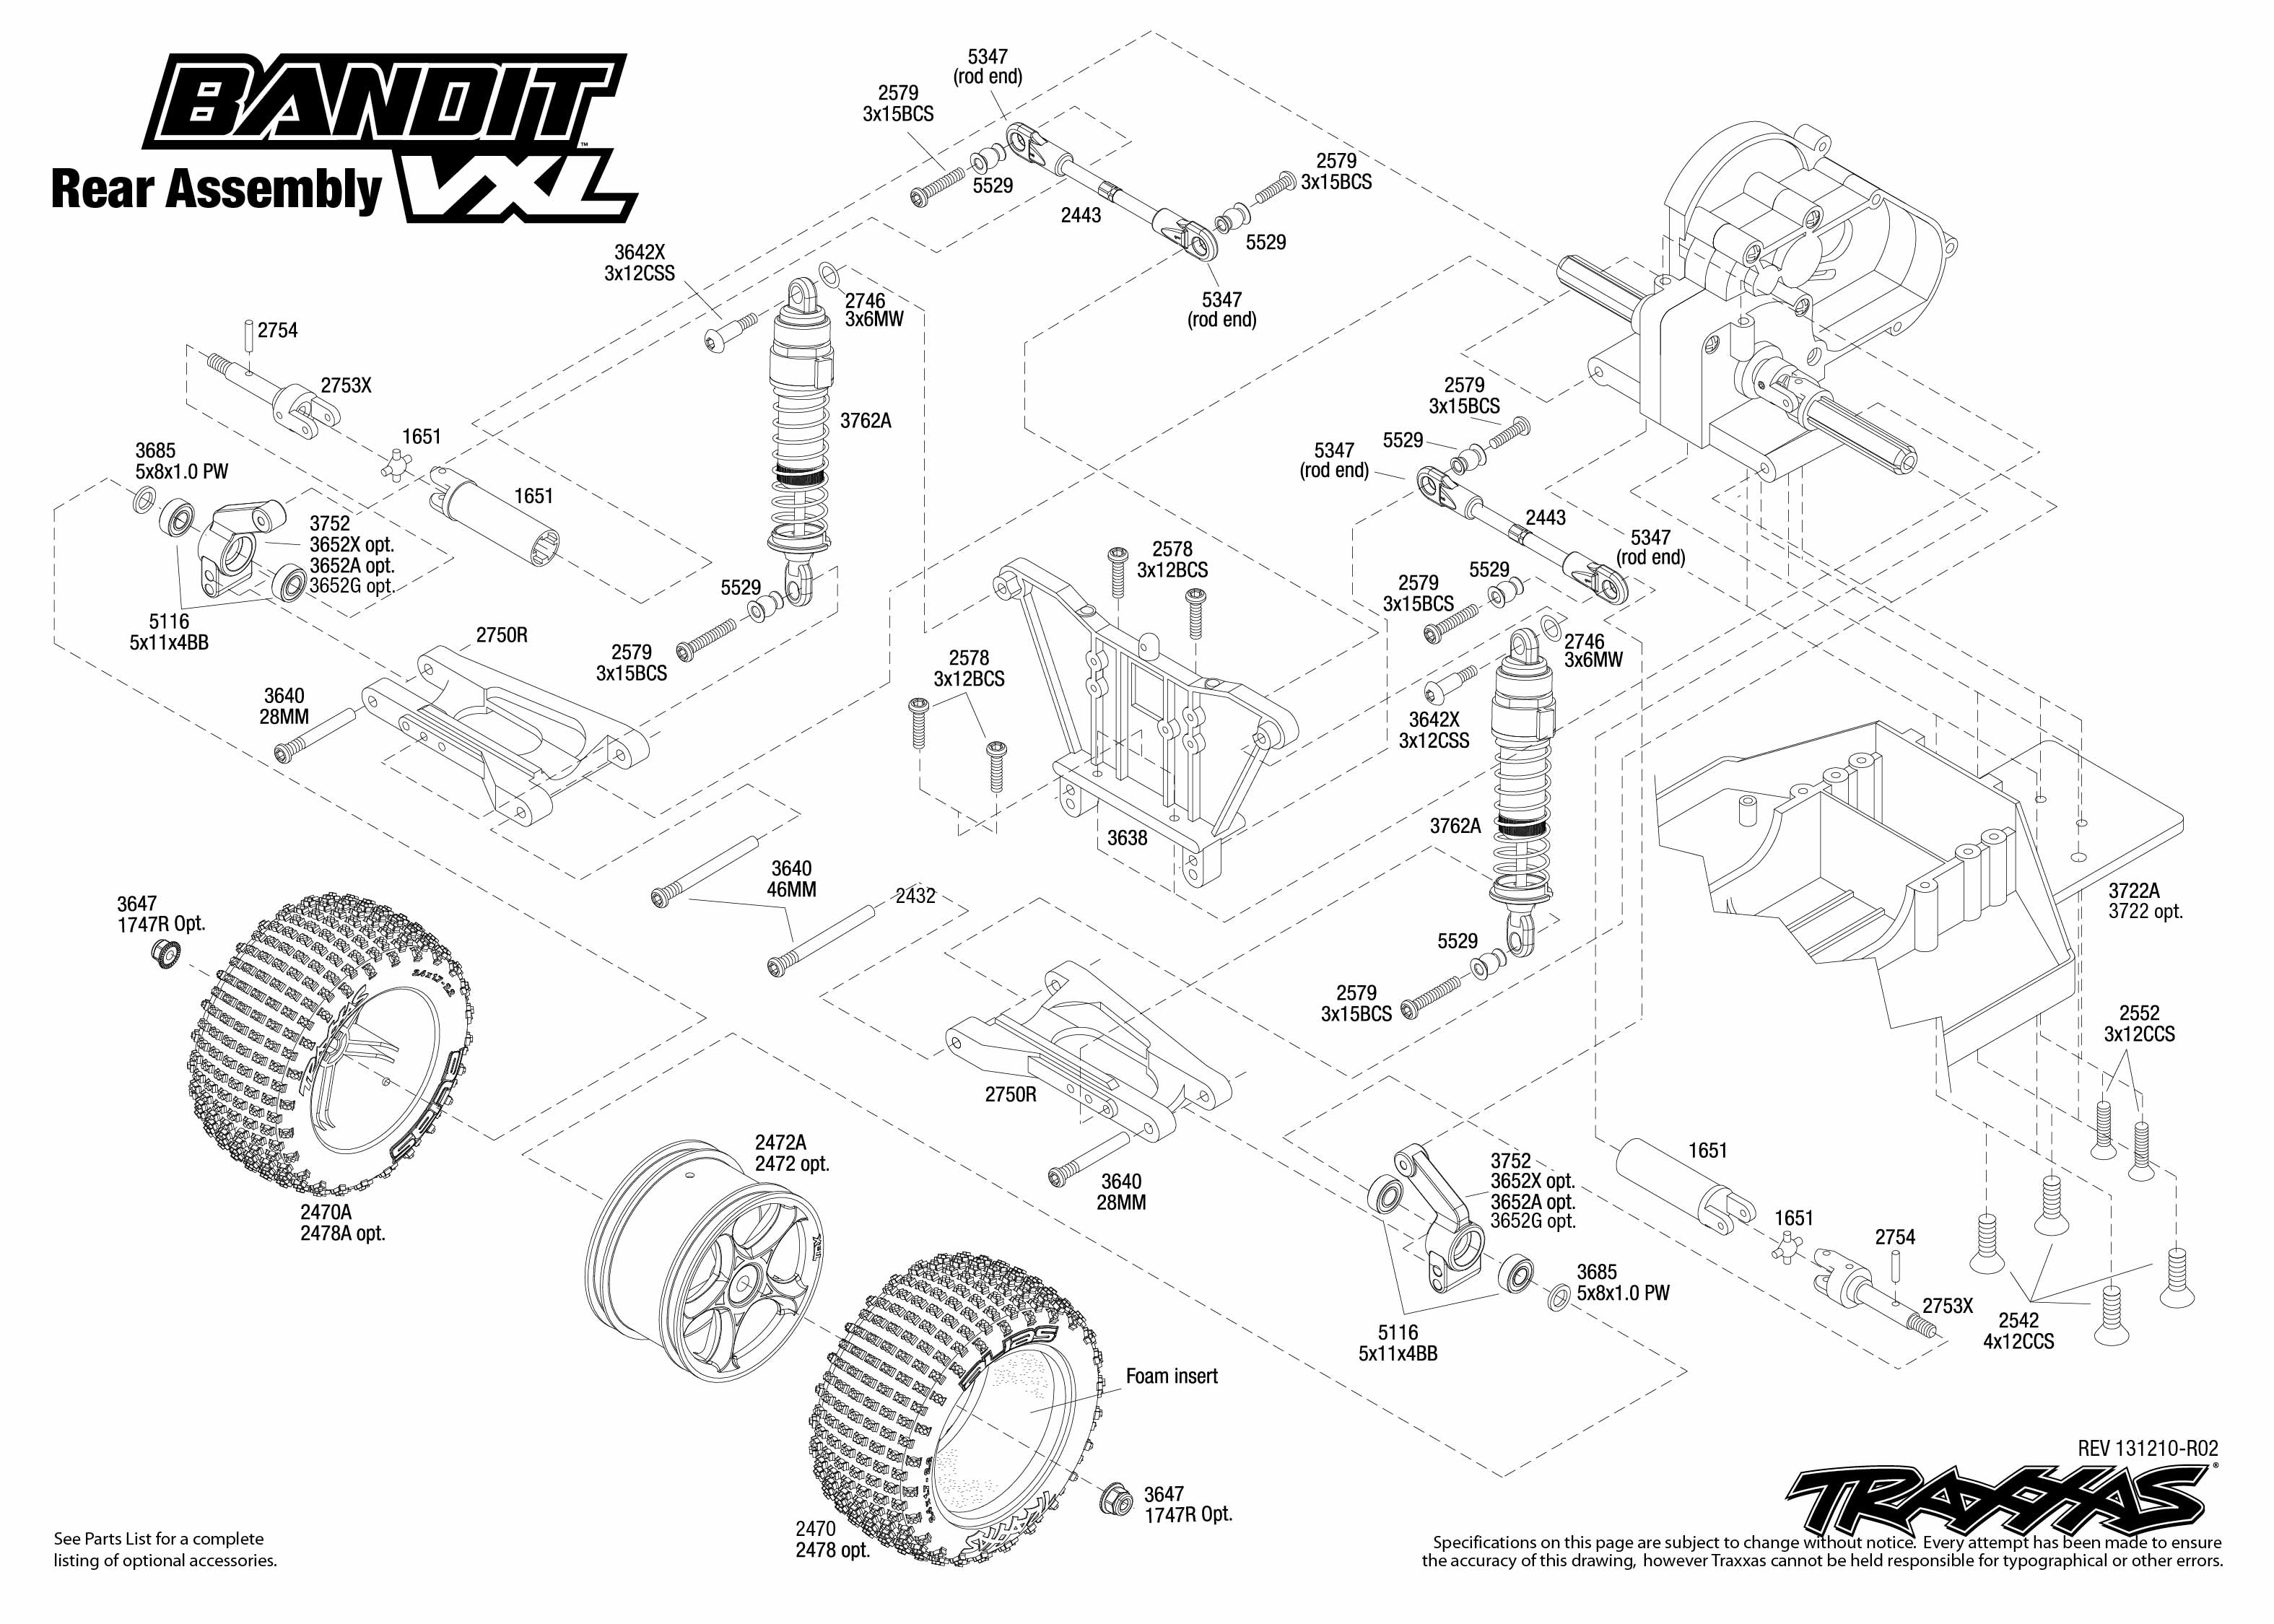 Rear Exploded View Bandit Vxl